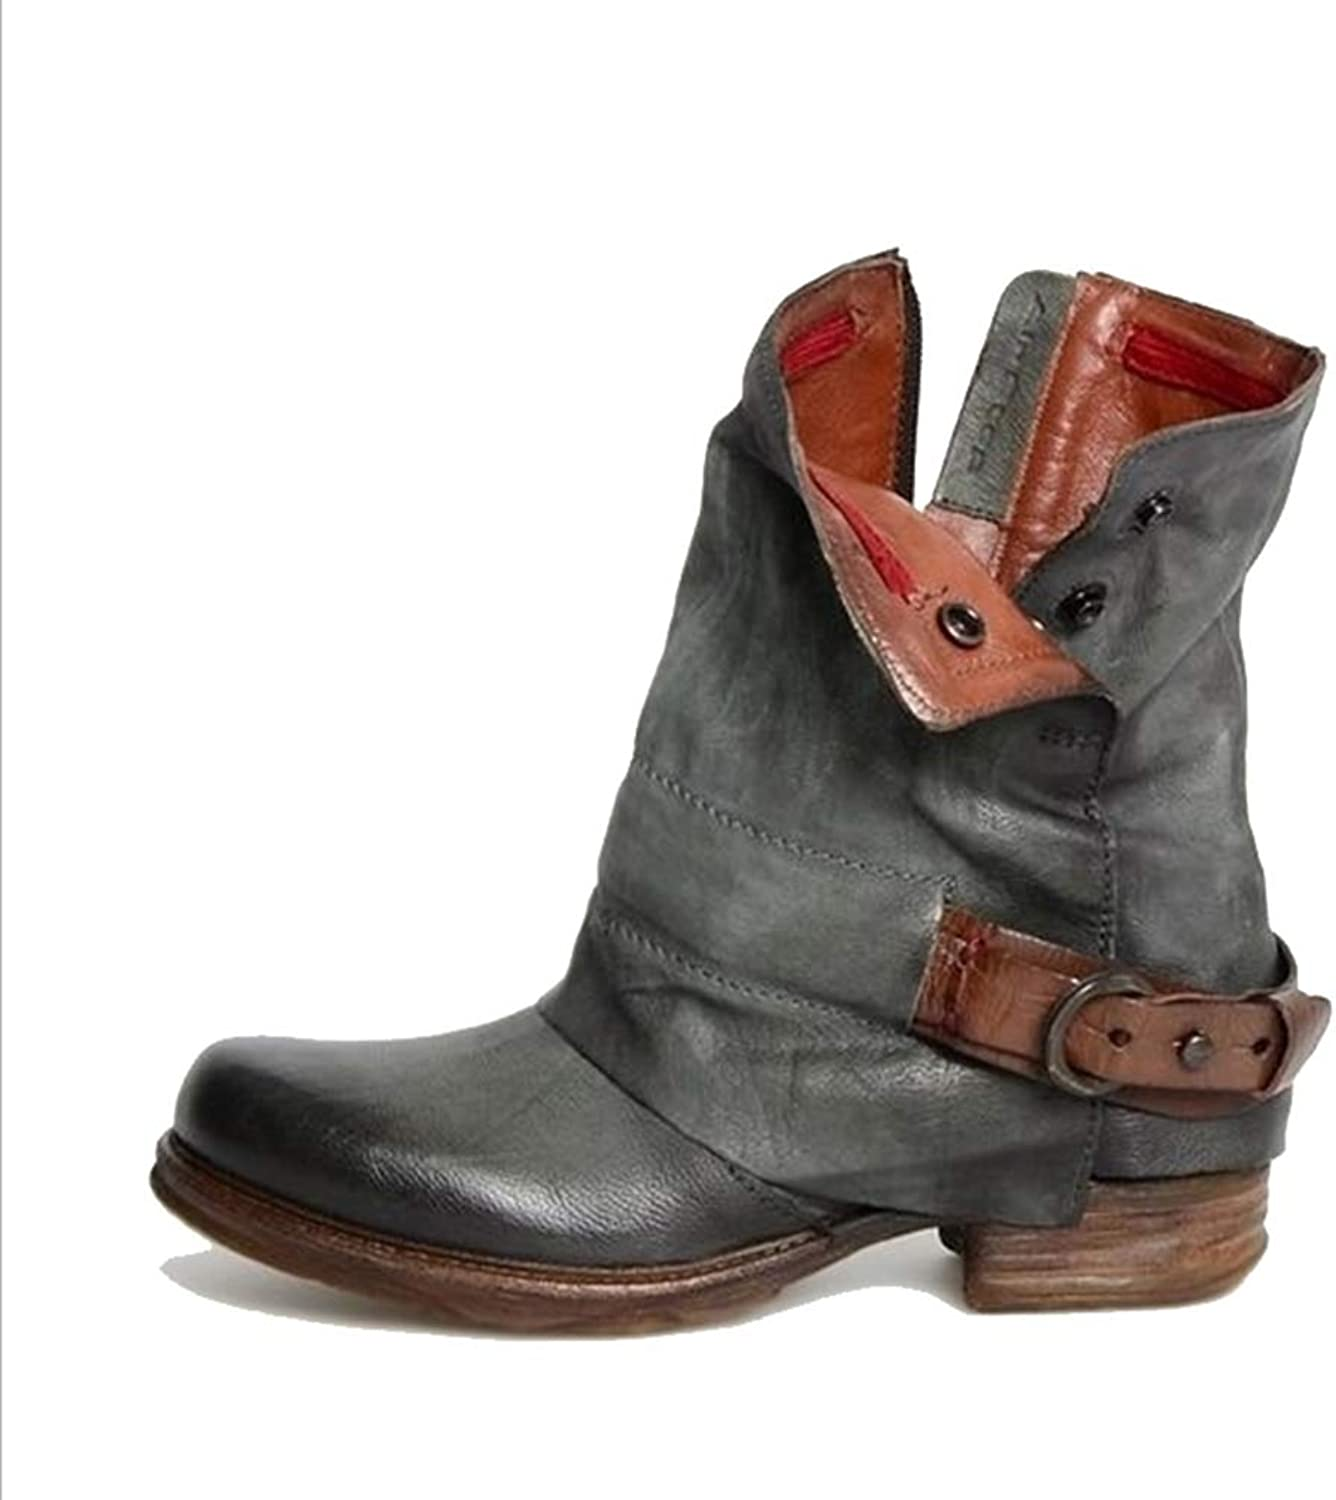 T-JULY Women's Ankle Boots Autumn Western Motorcycle Boots Ankle Bootie Causal Footwear shoes Booties